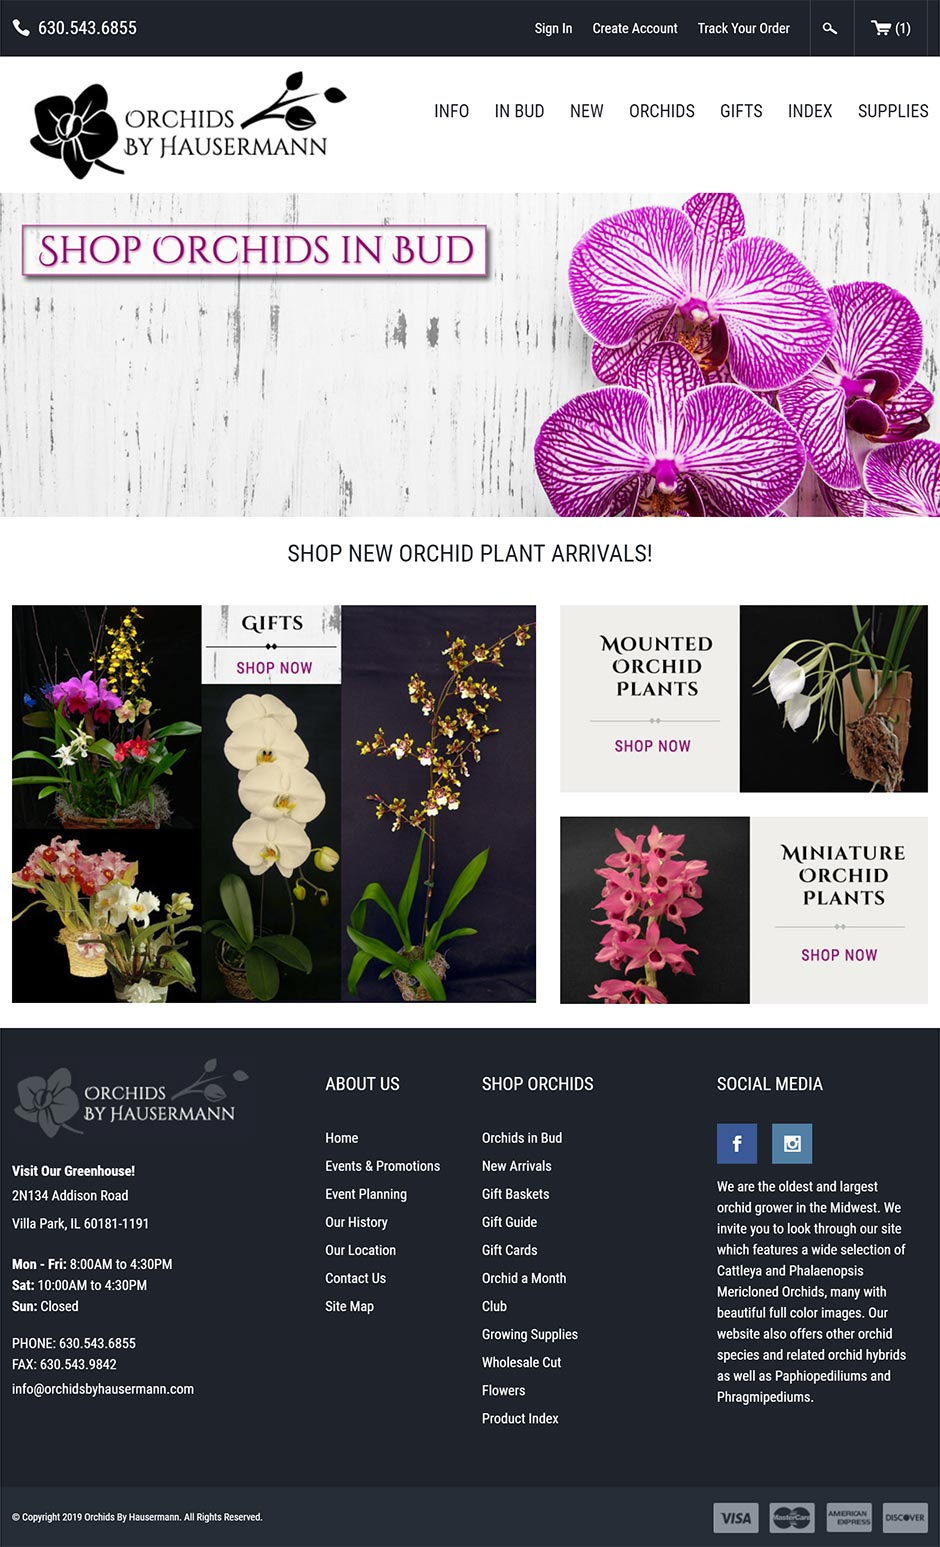 Orchids by Hausermann - Ecommerce Shopping Cart Website Development Portfolio